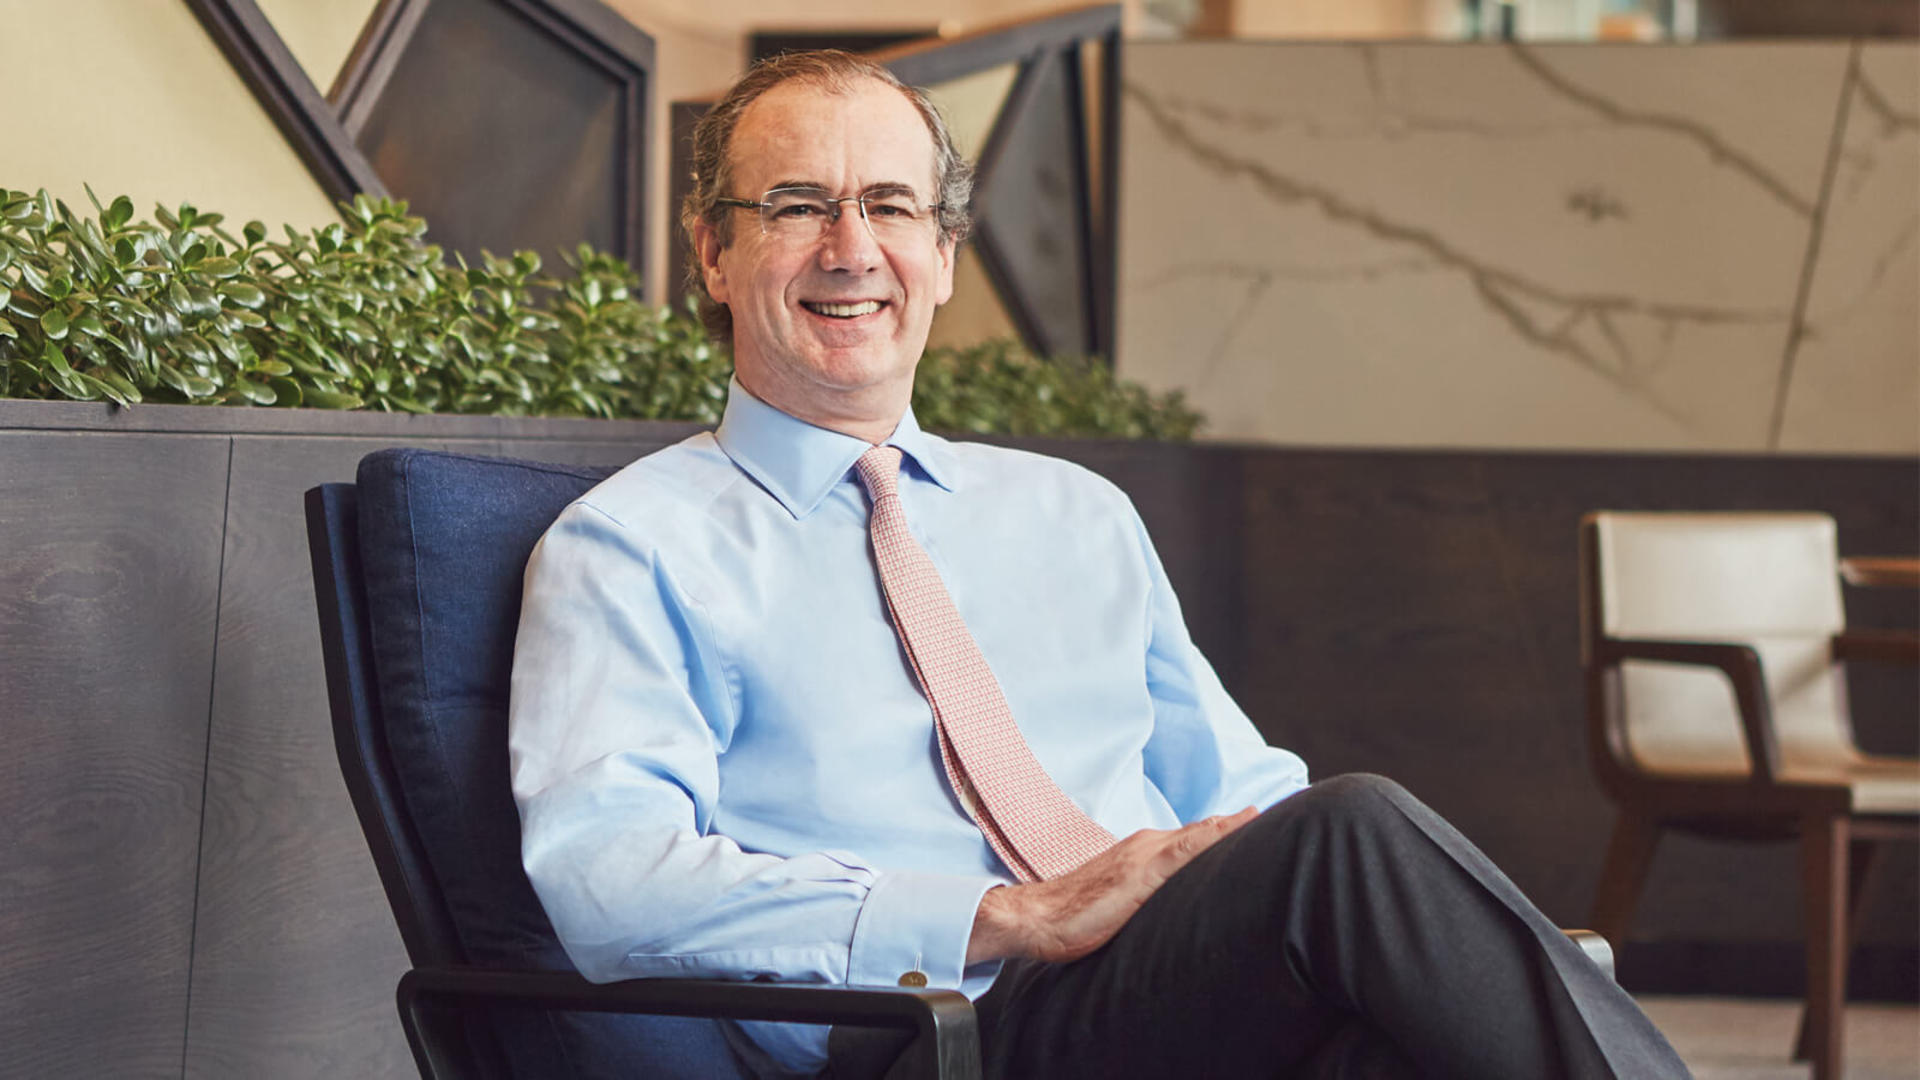 Robert Noel, Chief Executive